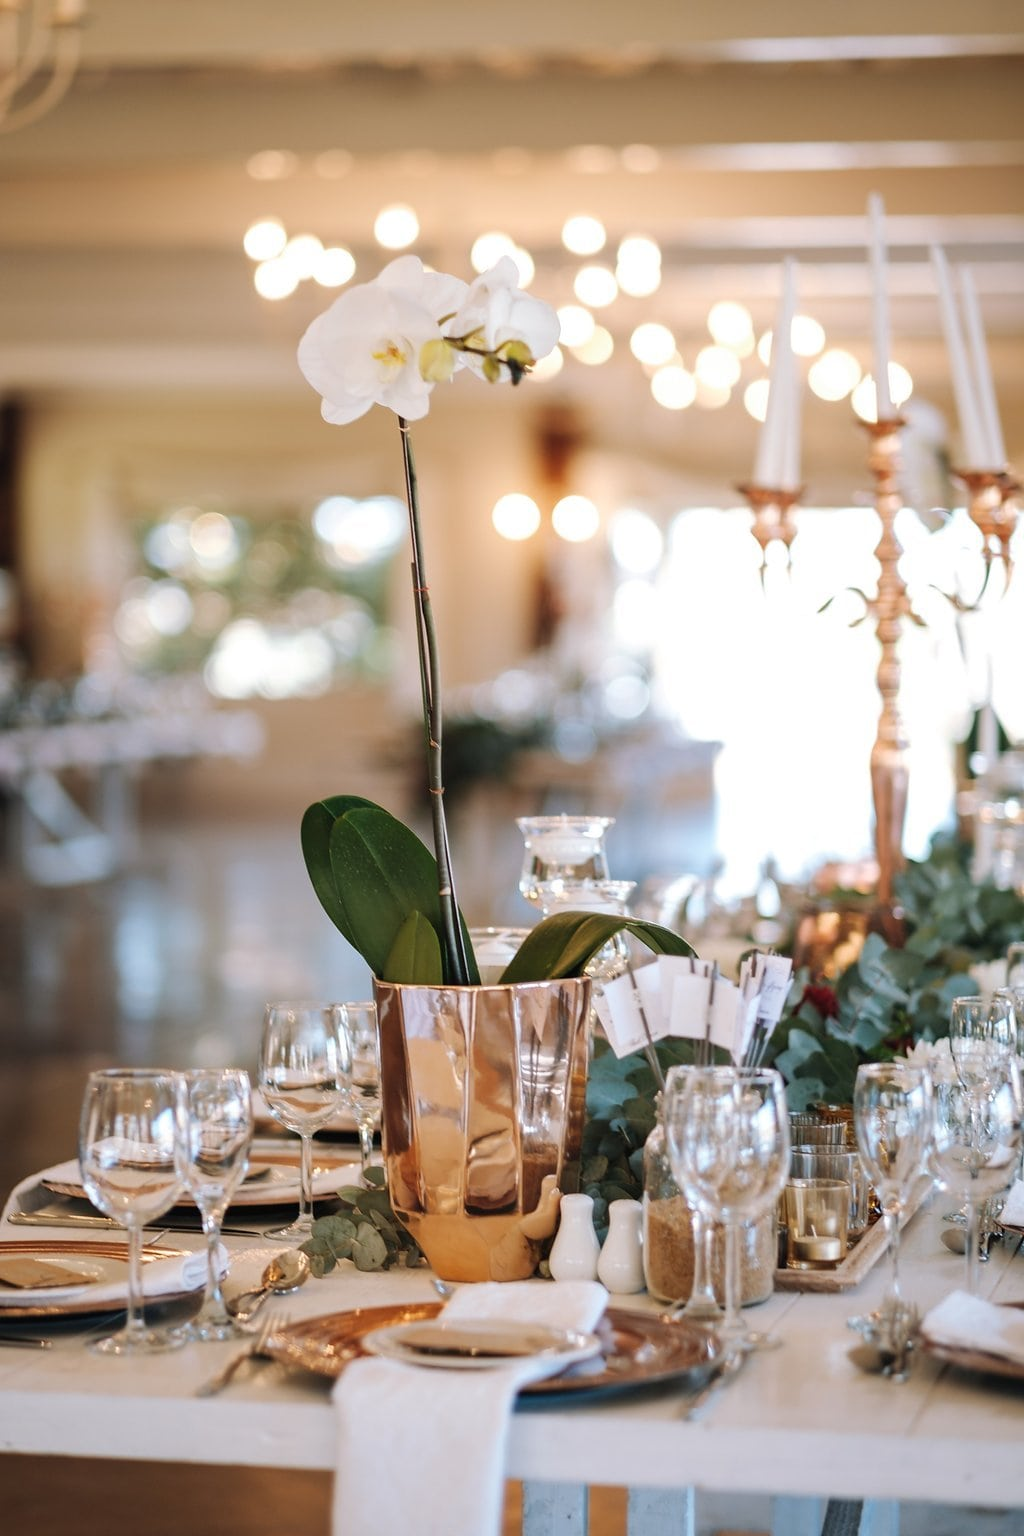 Orchid Centerpiece in Copper Vase | Image: The Shank Tank